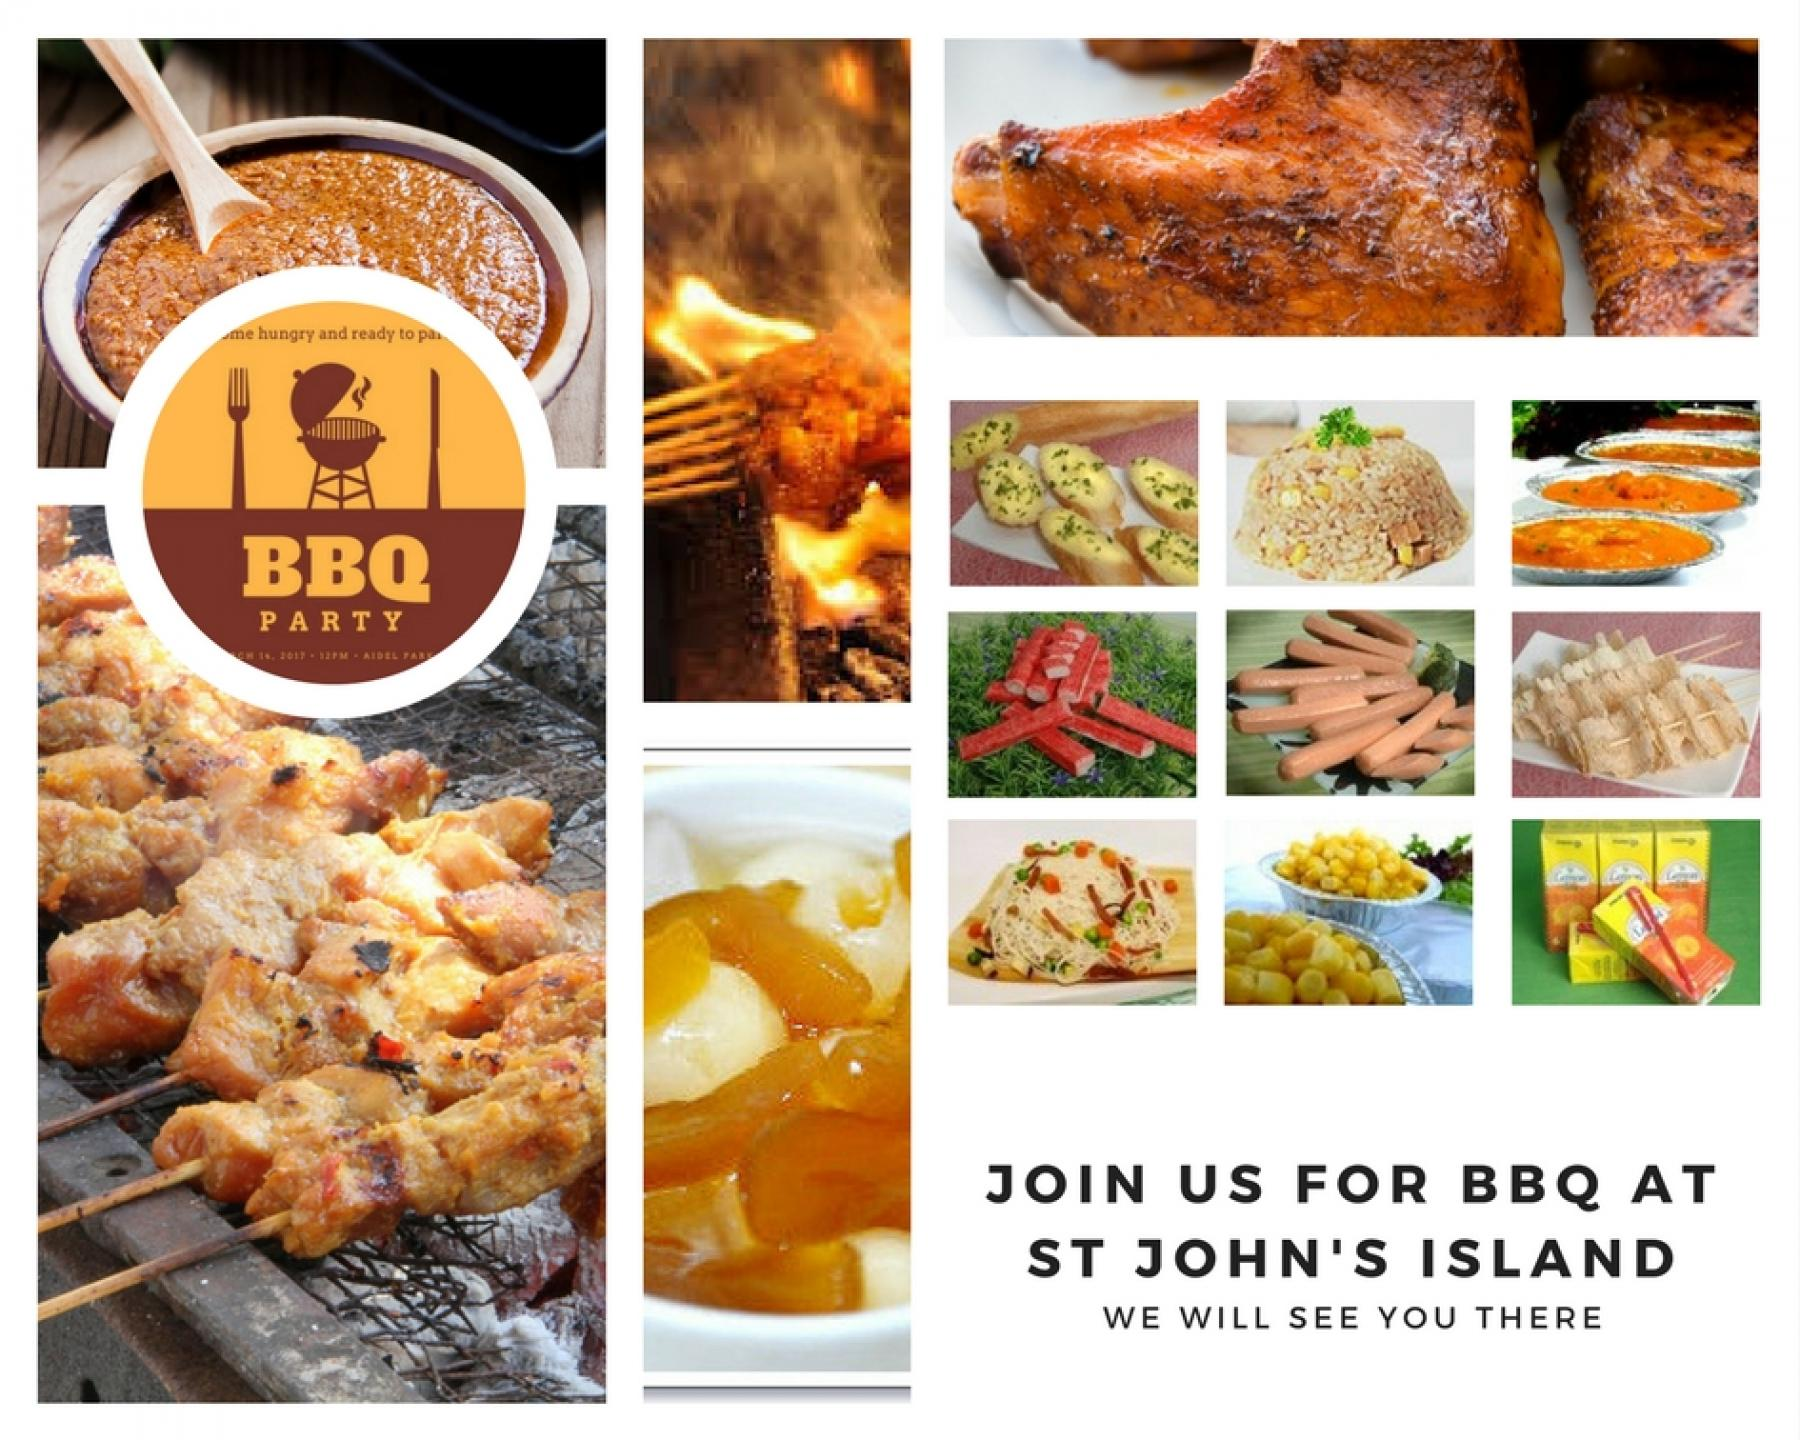 Let's BBQ and rediscover our Southern Islands in a fun way starting at St. John Island Singapore